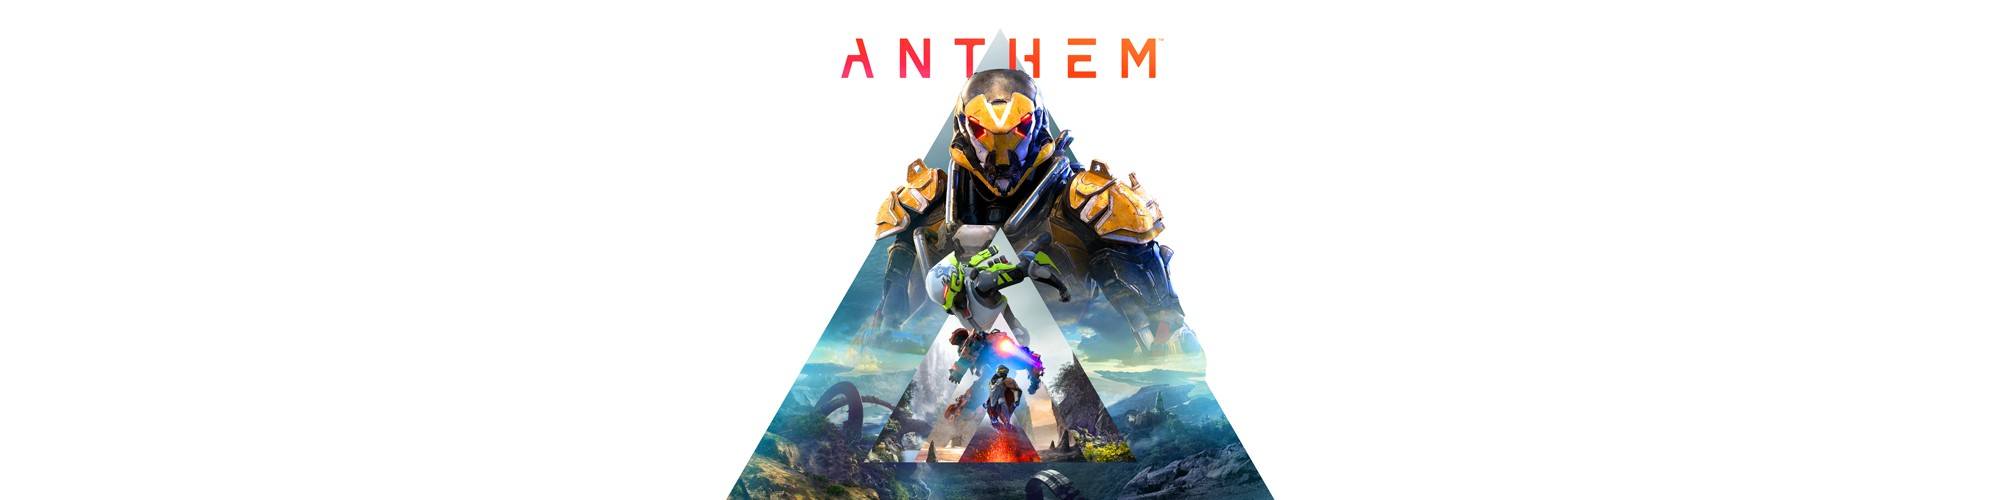 Anthem™ technical specifications for PCs